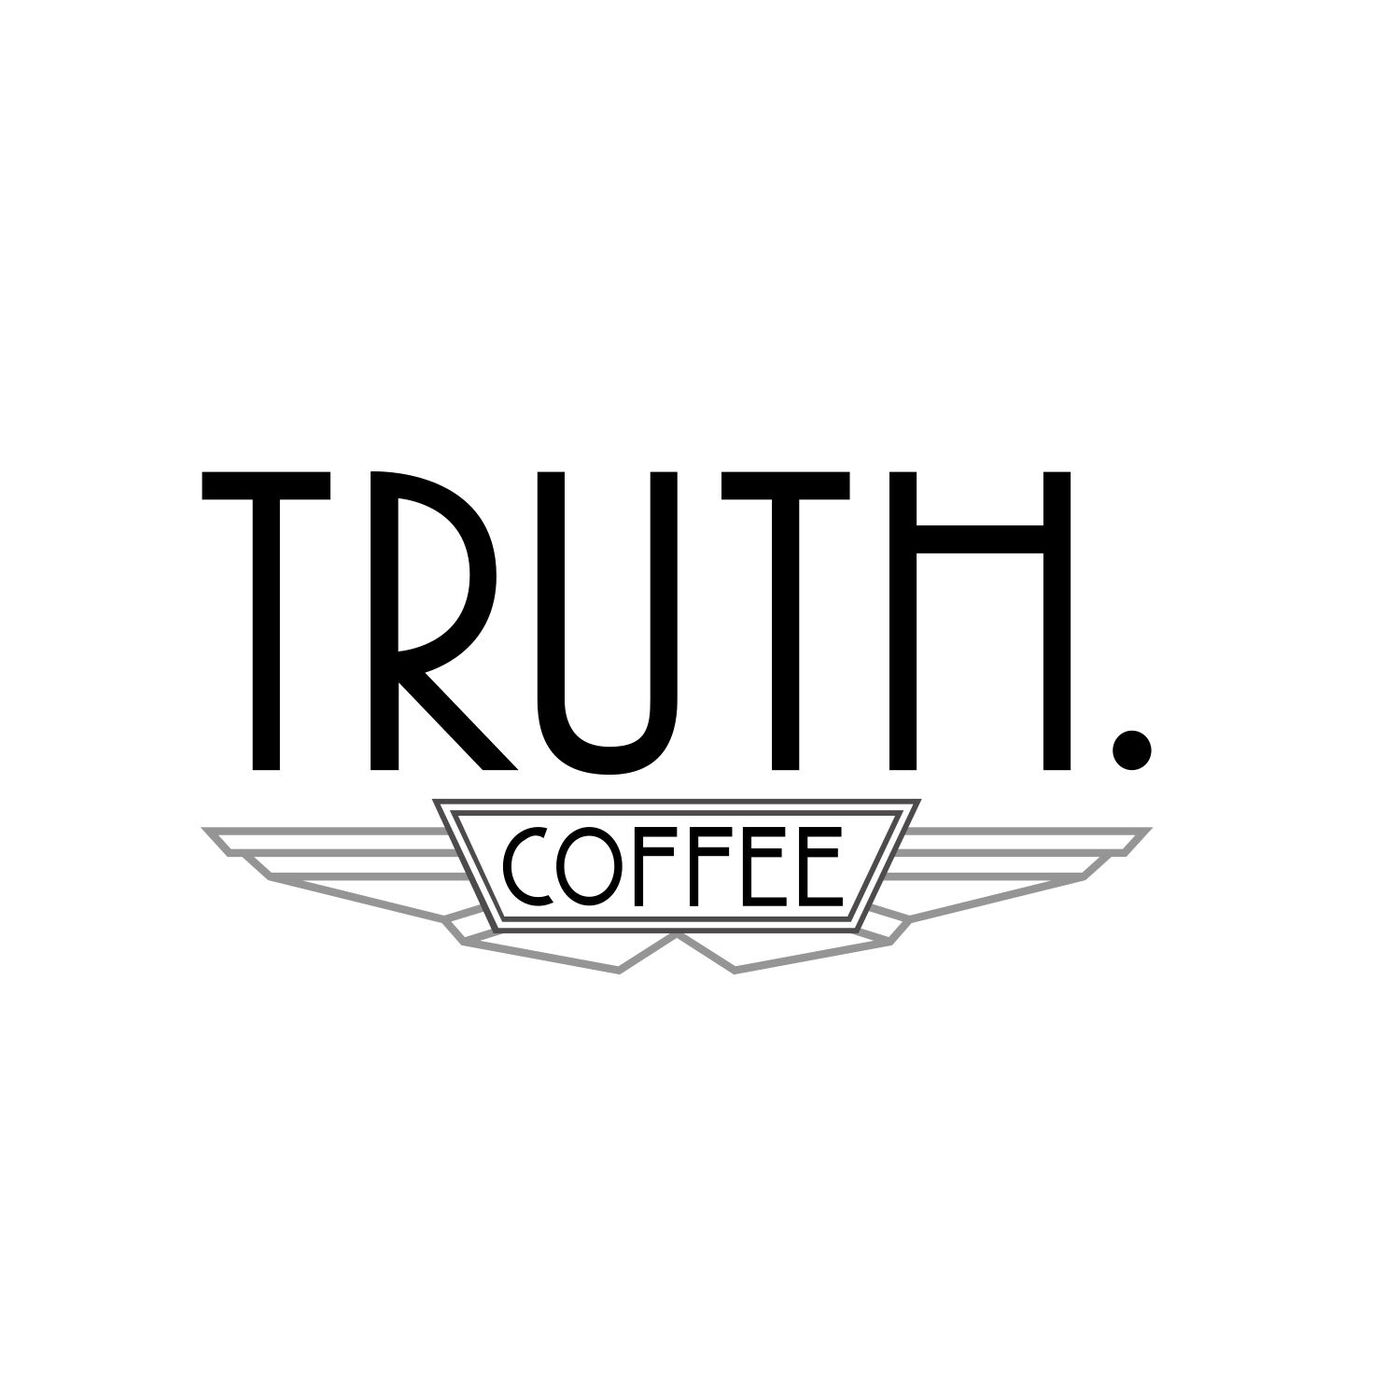 Episode 2 - David Donde from Truth Coffee